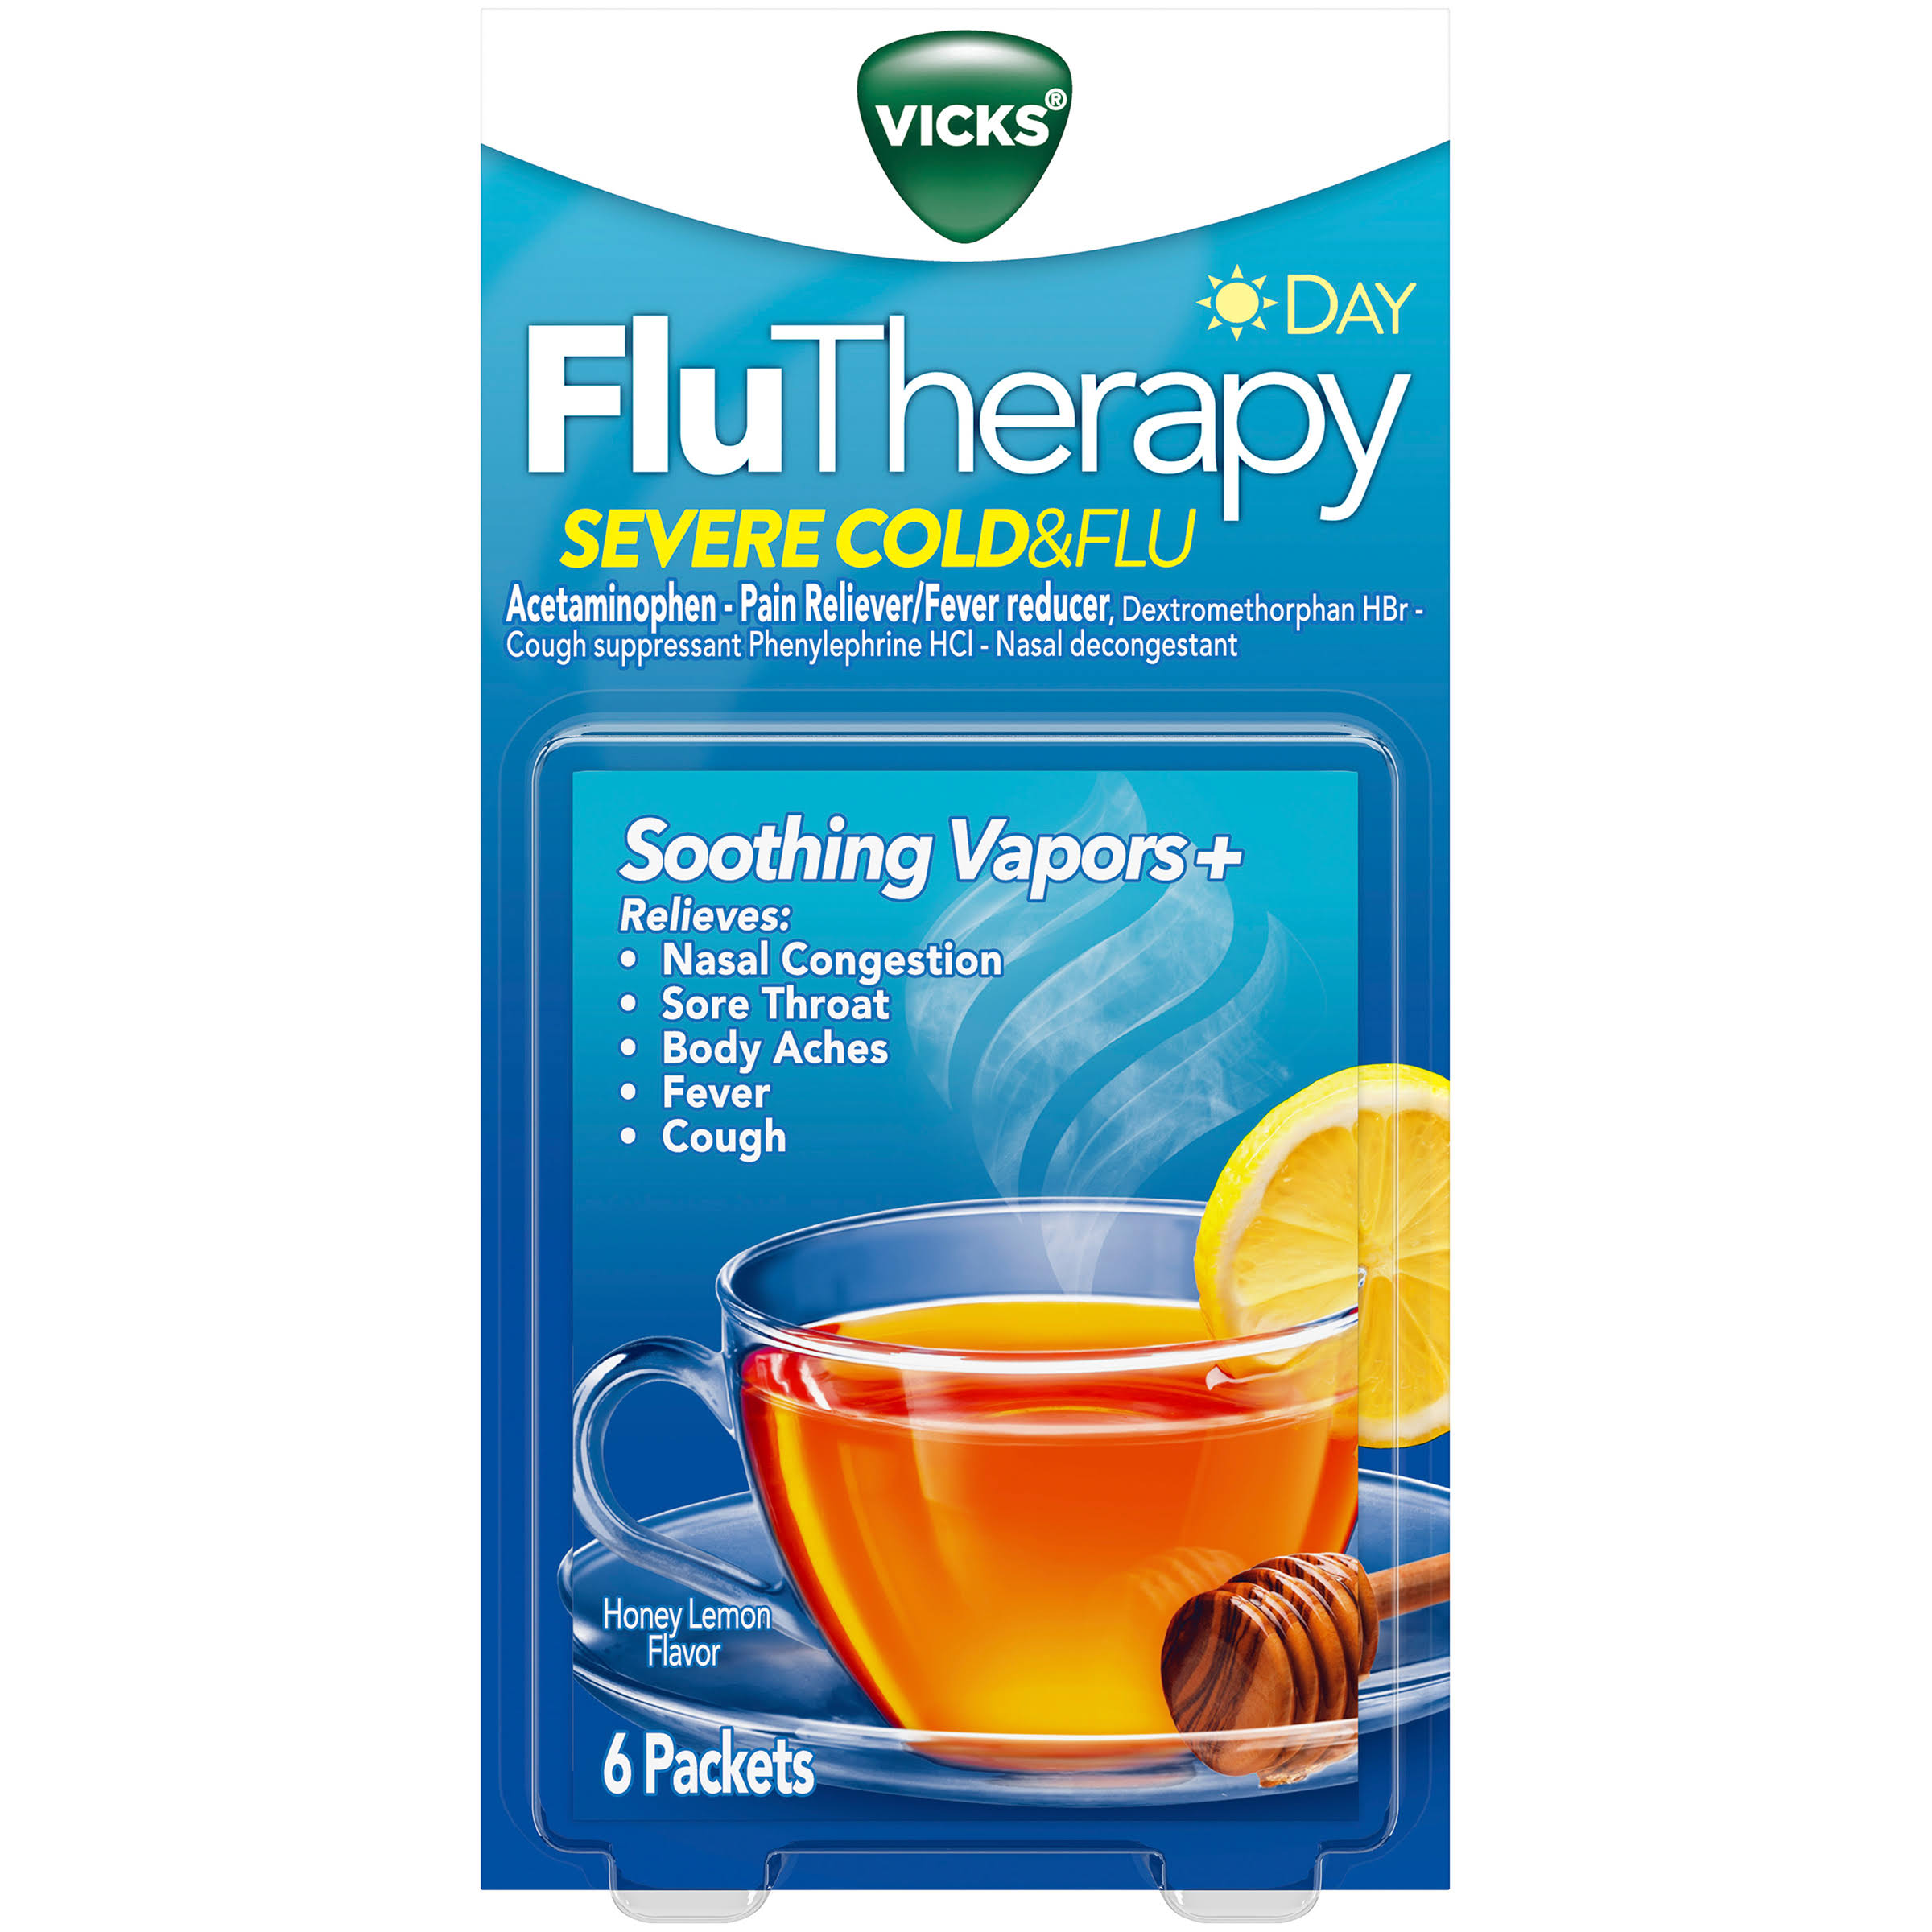 Vicks Flu Therapy, Severe Cold & Flu, Day, Honey Lemon Flavor - 6 packets